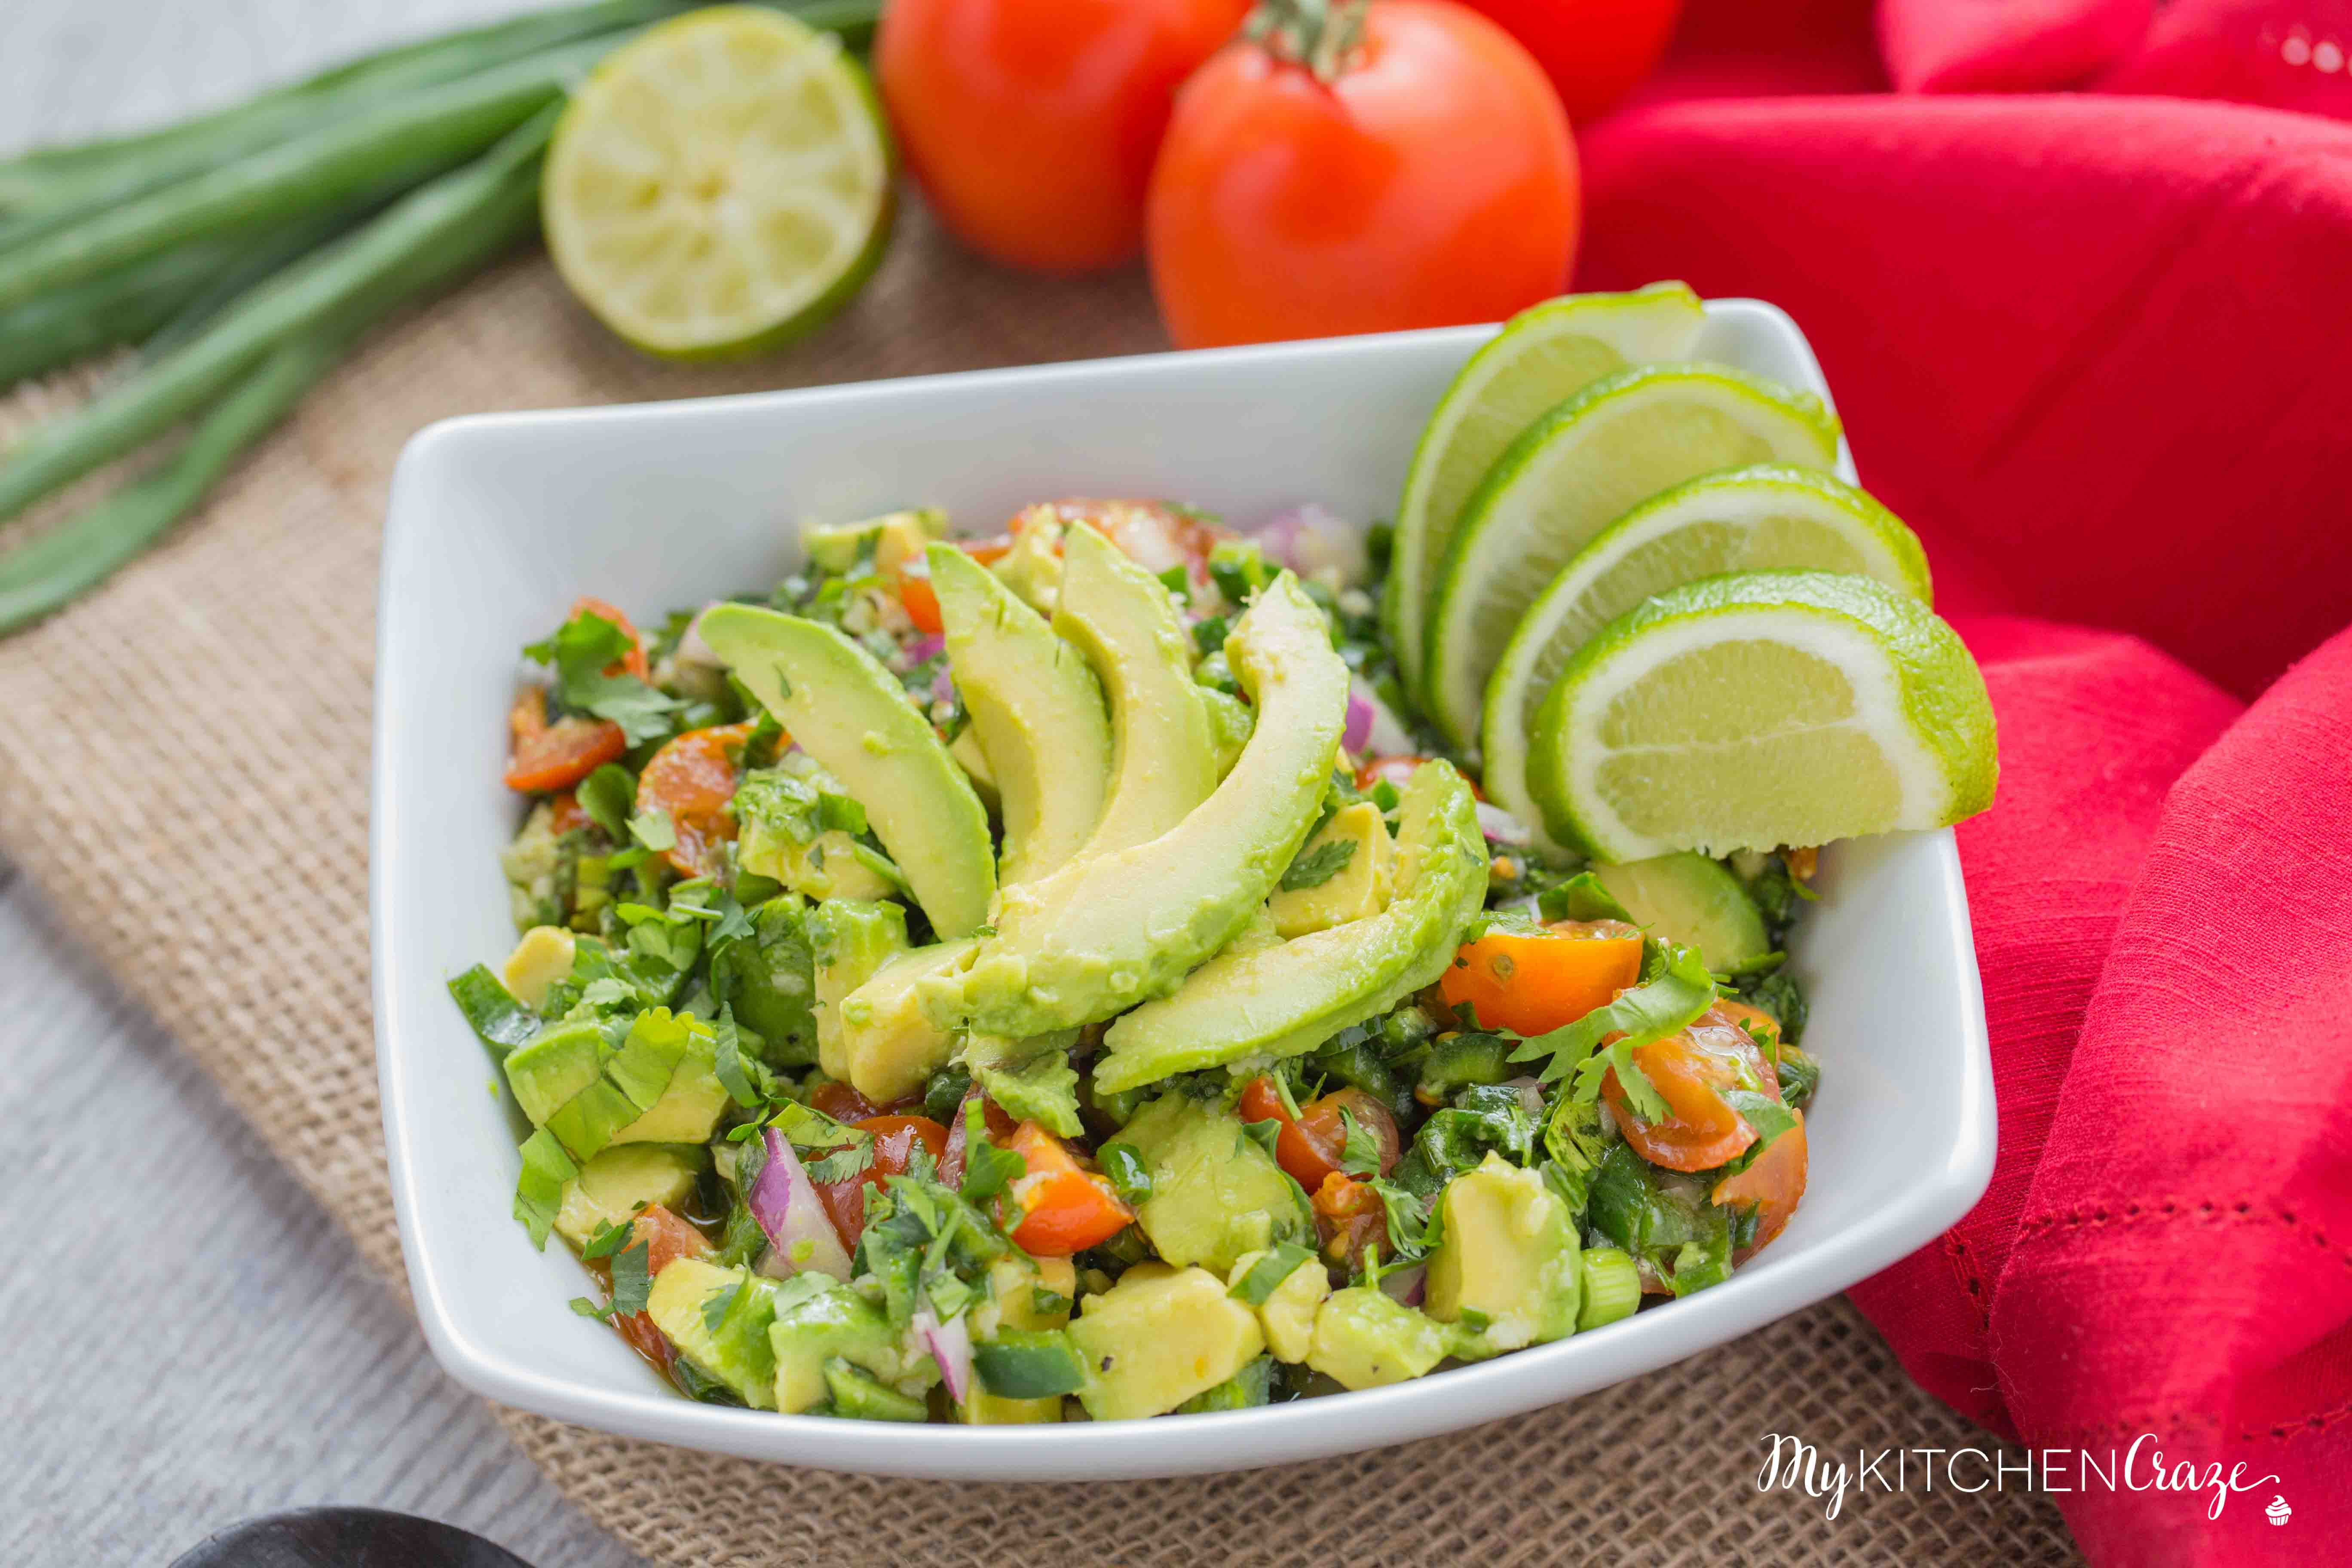 Avocado Salad_-3Avocado Salad ~ mykitchencraze.com ~ Enjoy this easy and refreshing Avocado Salad as a side dish or a main entree. Either way it's easy to make and tastes delicious!